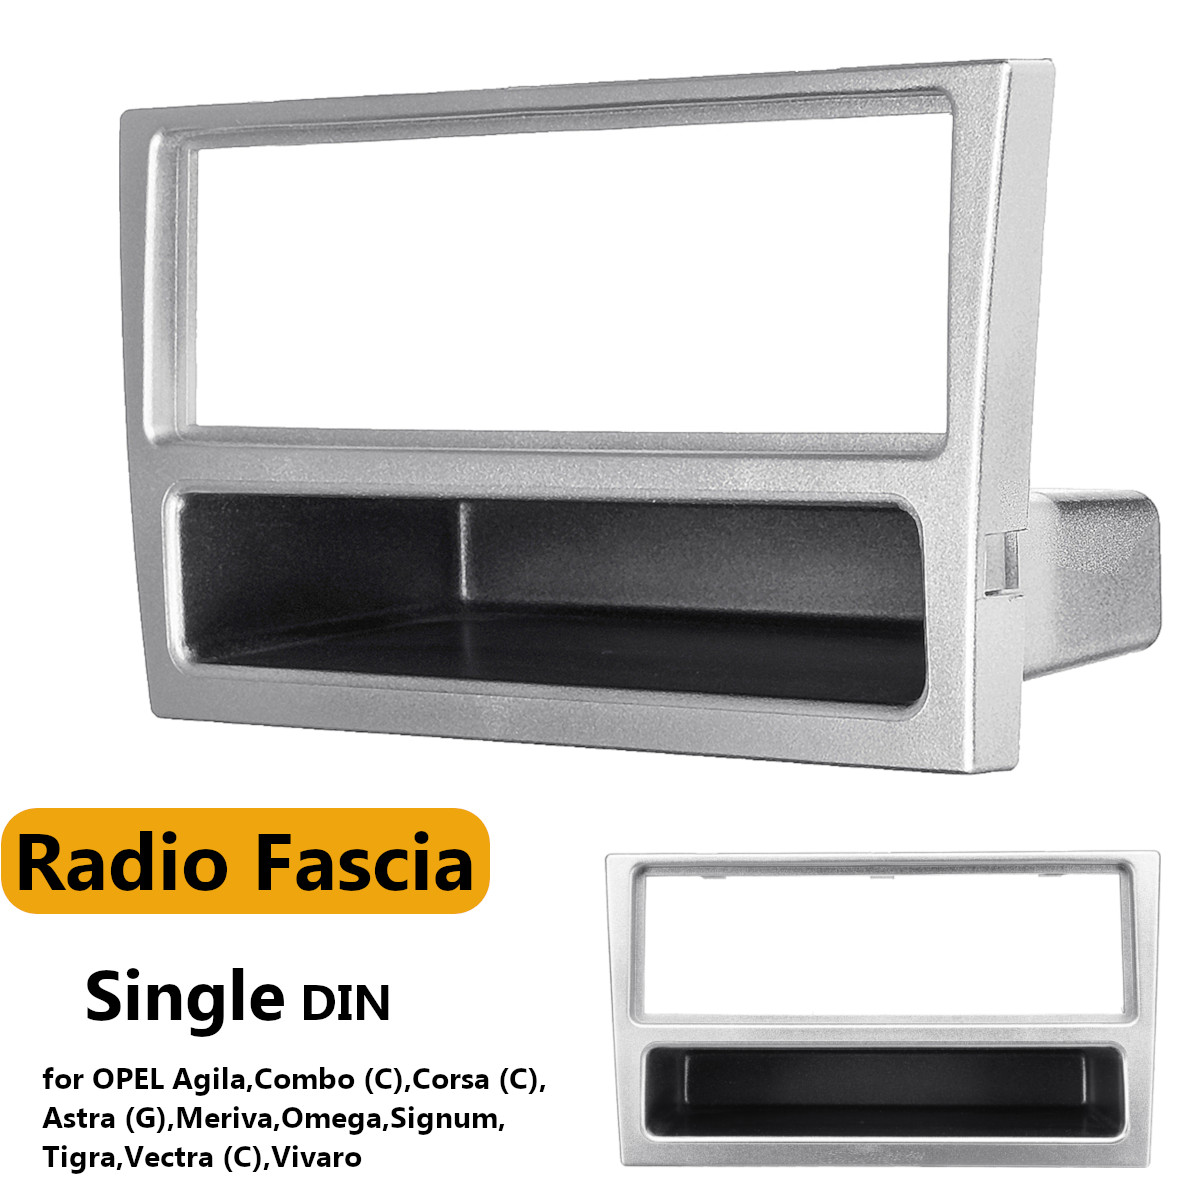 1 Din Car Stereo Radio DVD Player Fascia Panel Plate Frame for OPEL Agila Tigra Astra For Corsa for Omega for Signum for Vectra image